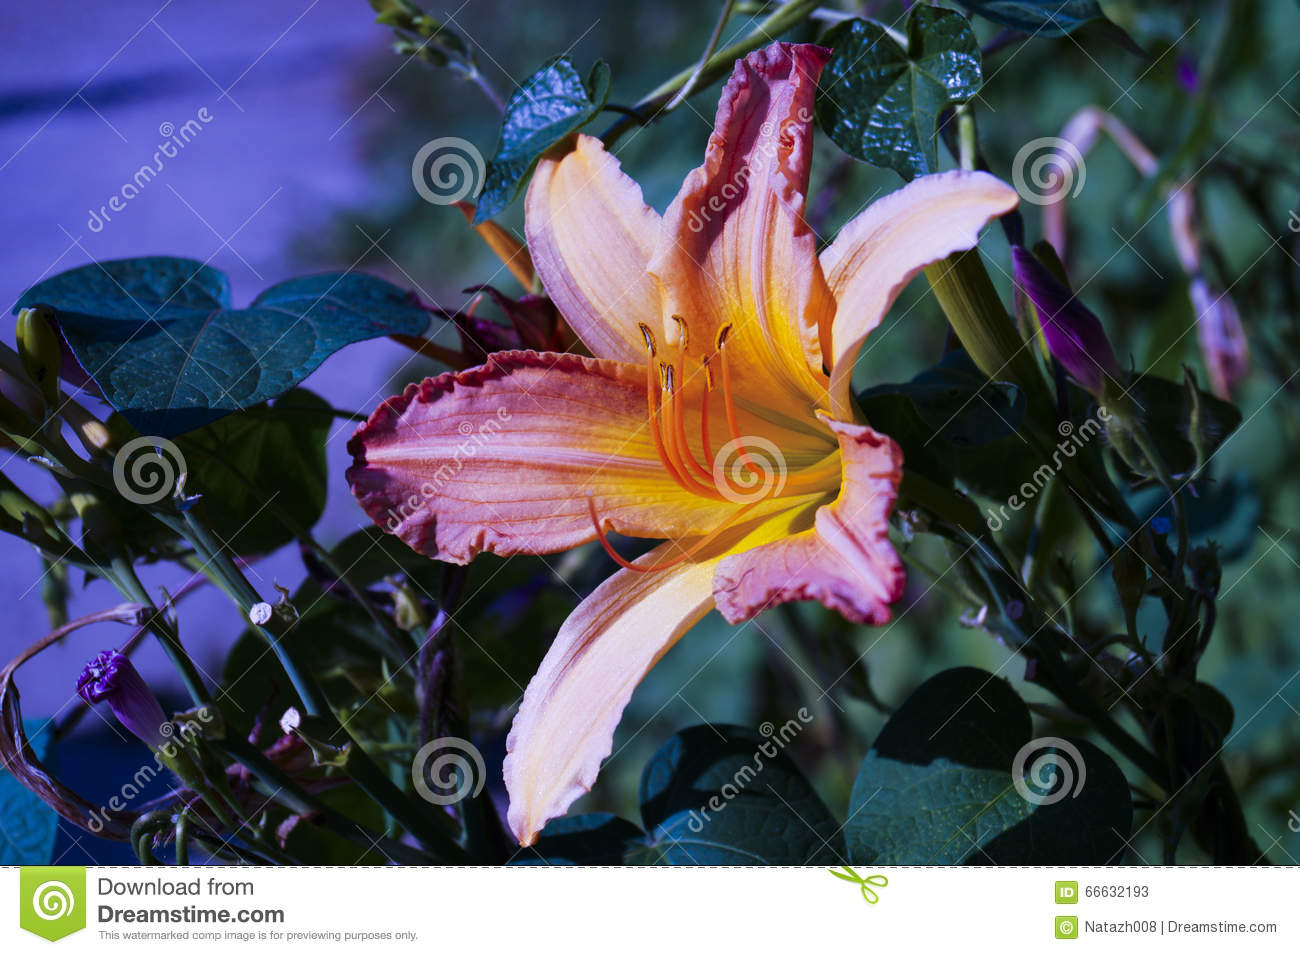 Lily Flower With Multicolored Petals Stock Image Image Of Colors